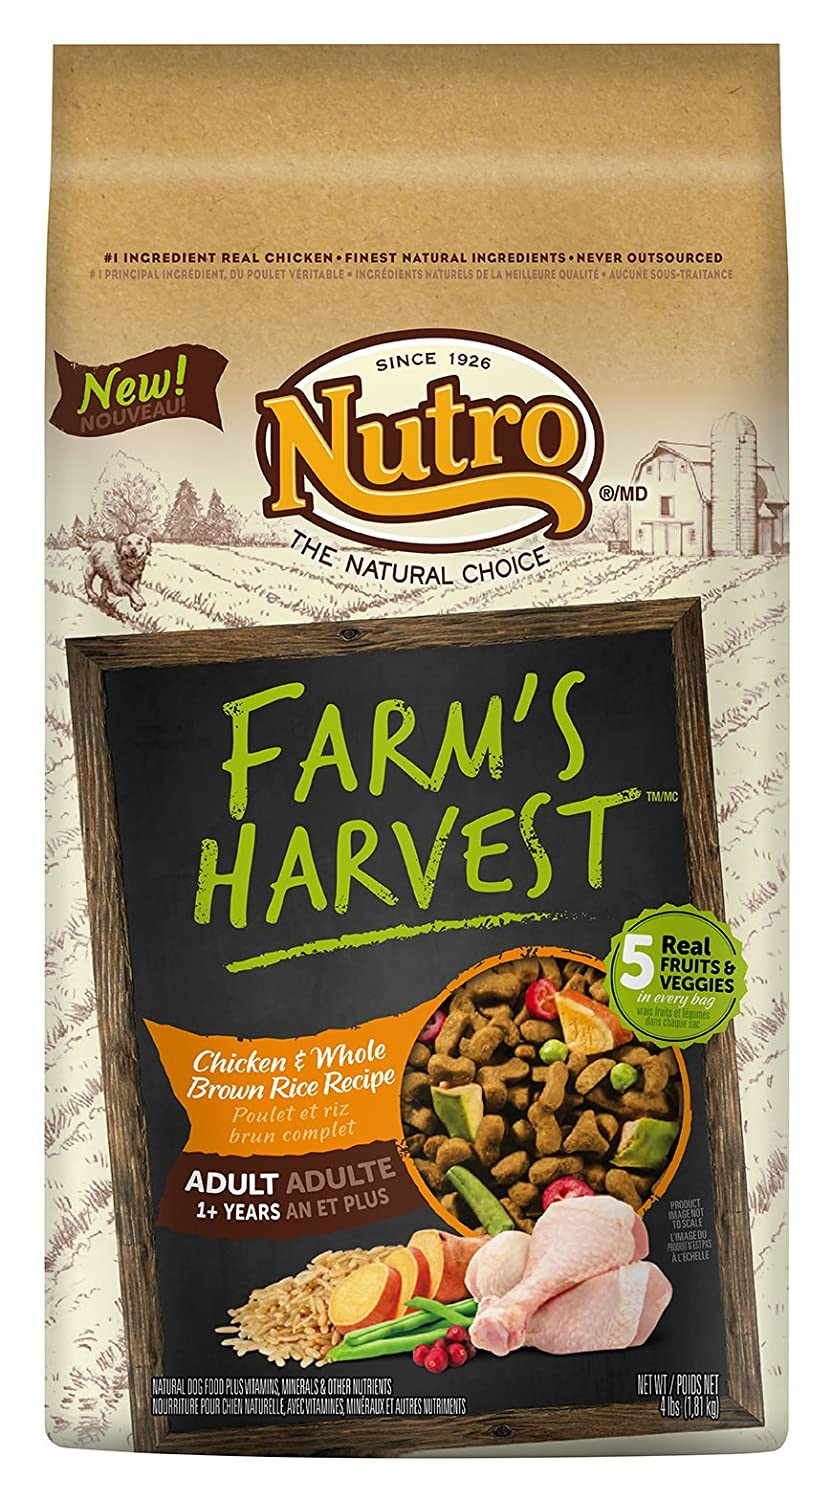 Amazon nutro farms harvest adult chicken and whole brown rice amazon nutro farms harvest adult chicken and whole brown rice 4 lbs pet supplies forumfinder Image collections